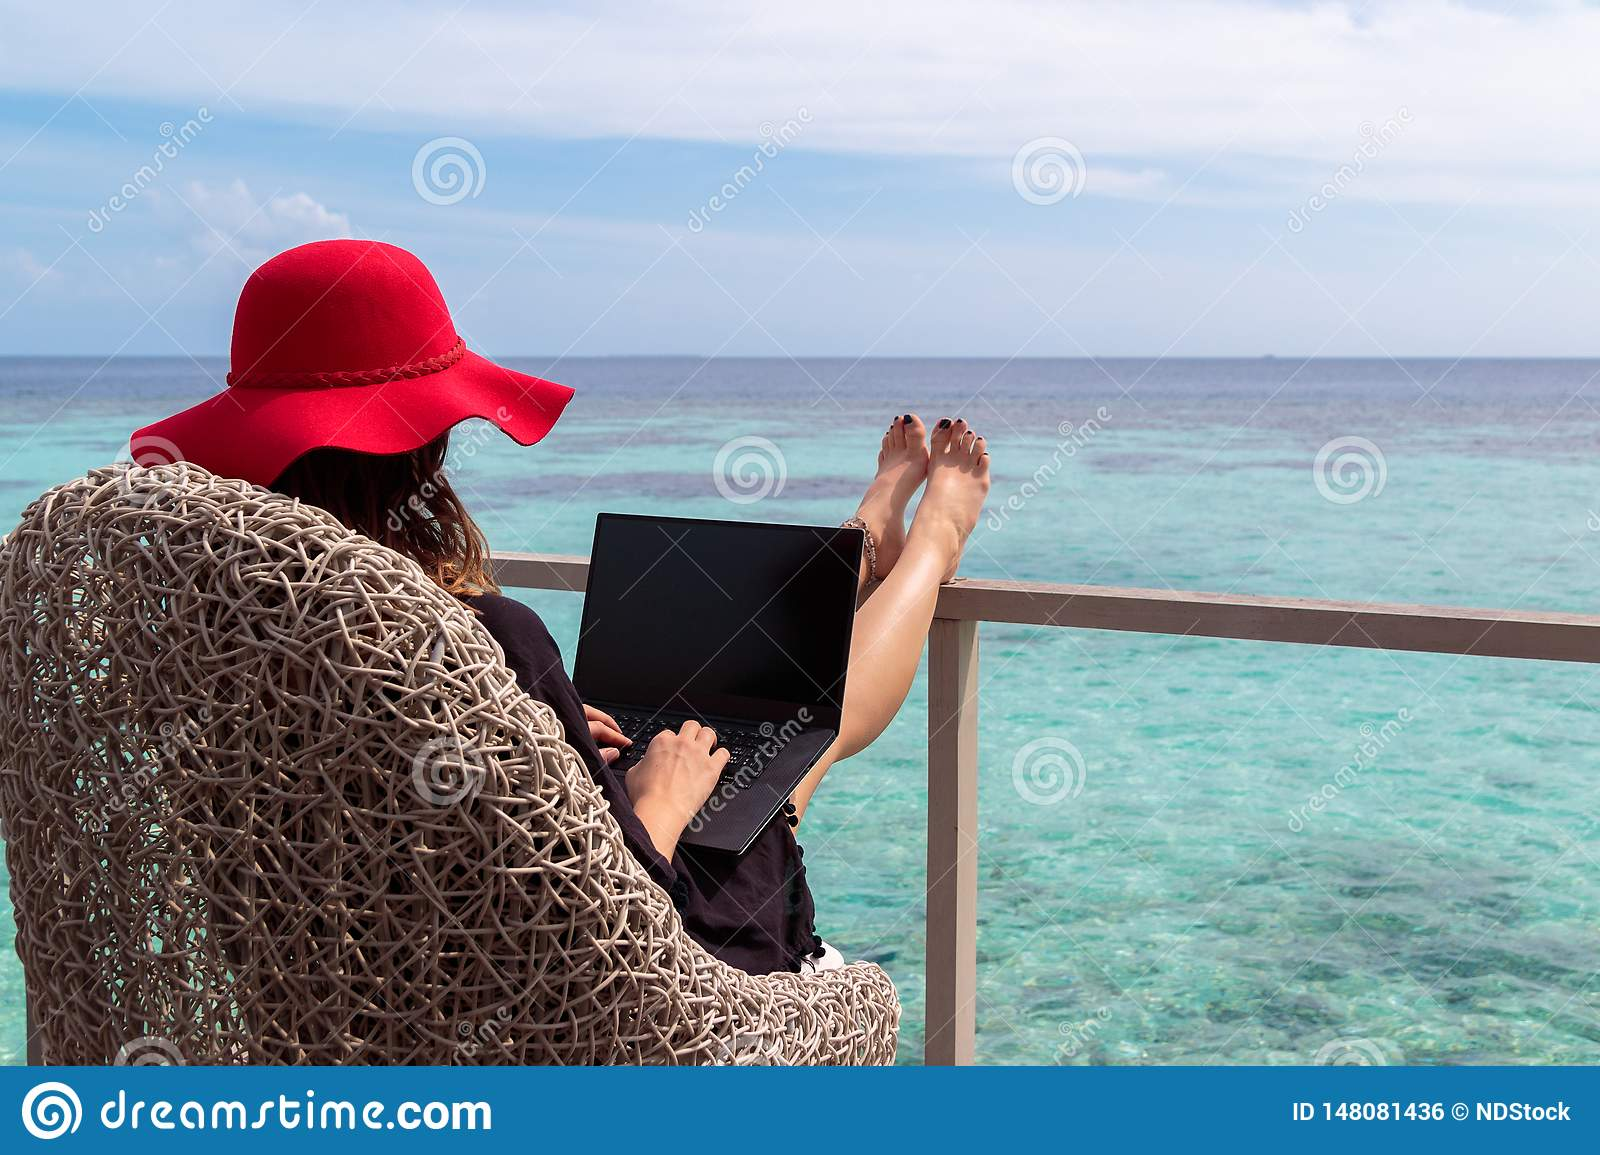 Young woman with red hat working on a computer in a tropical destination